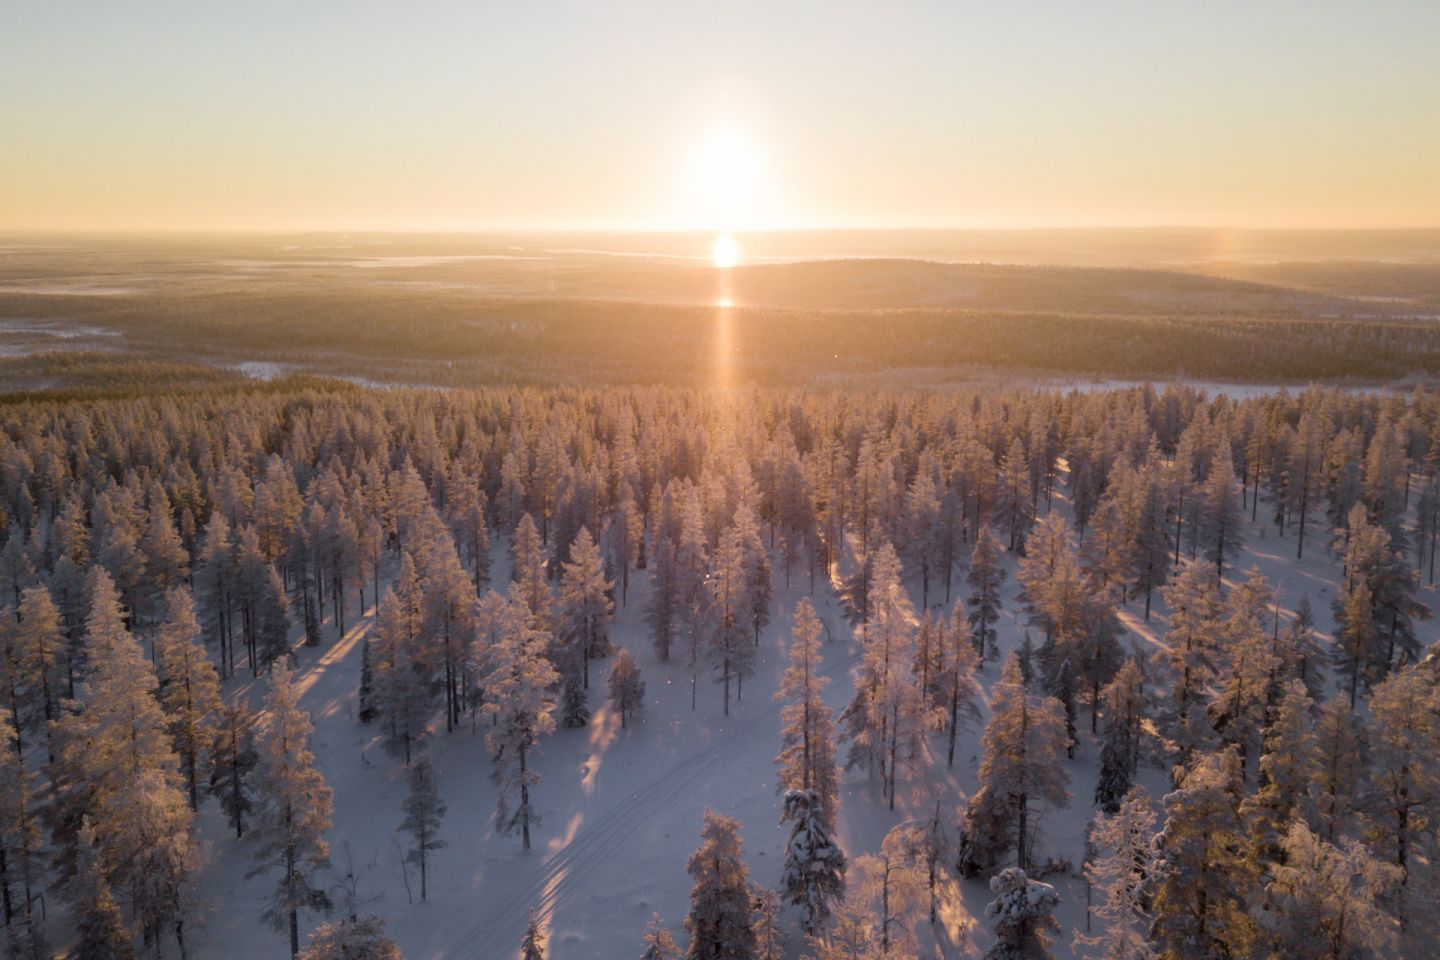 A sunny day in winter in Finnish Lapland